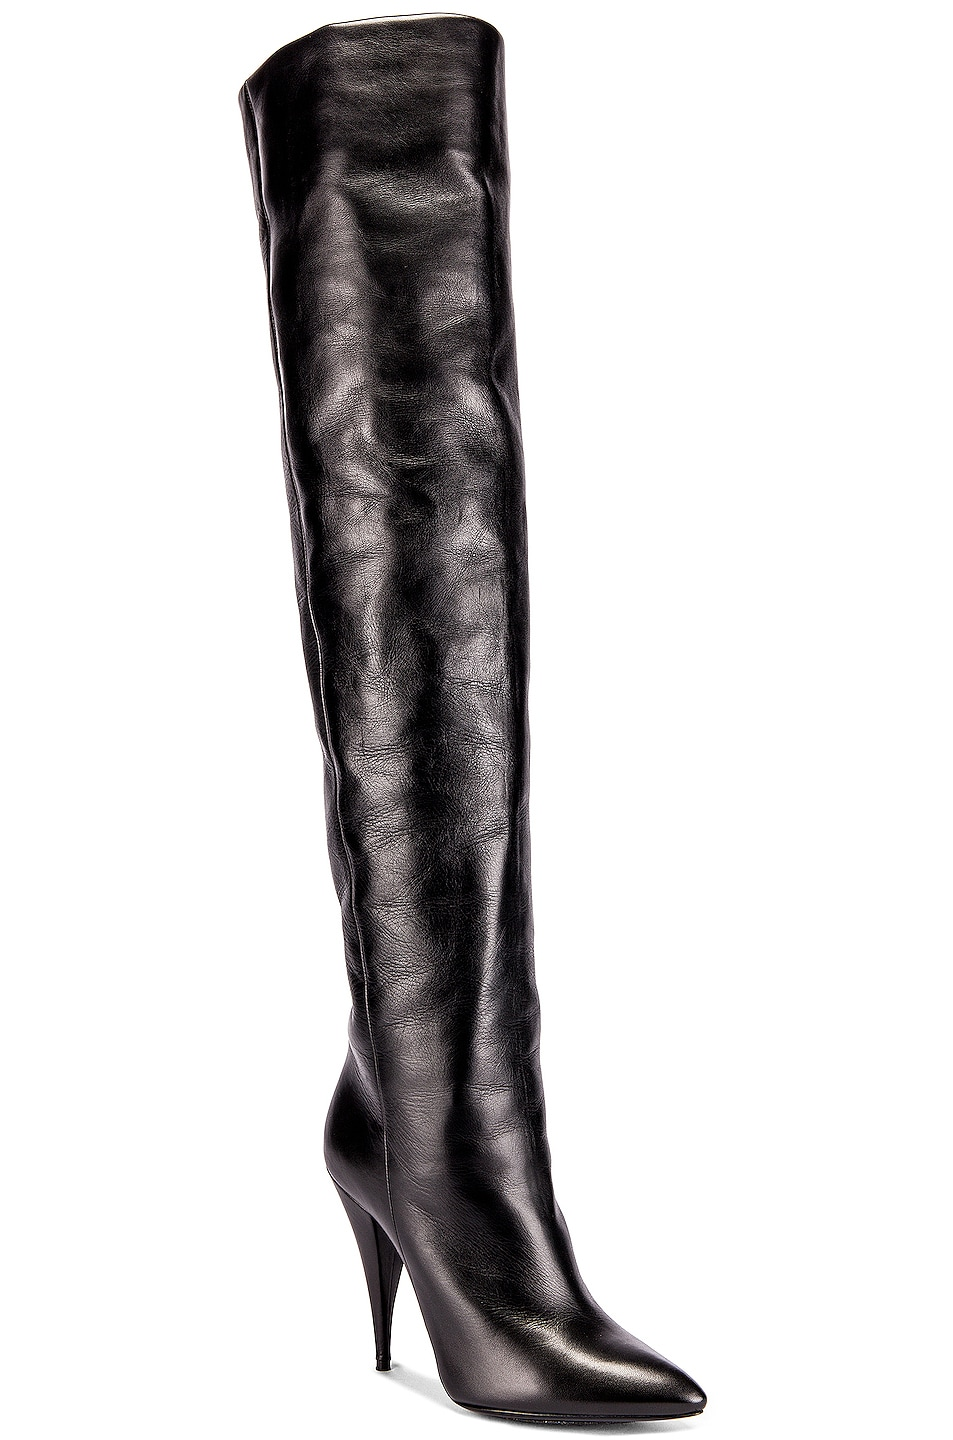 Image 2 of Saint Laurent Kiki Knee High Boots in Black